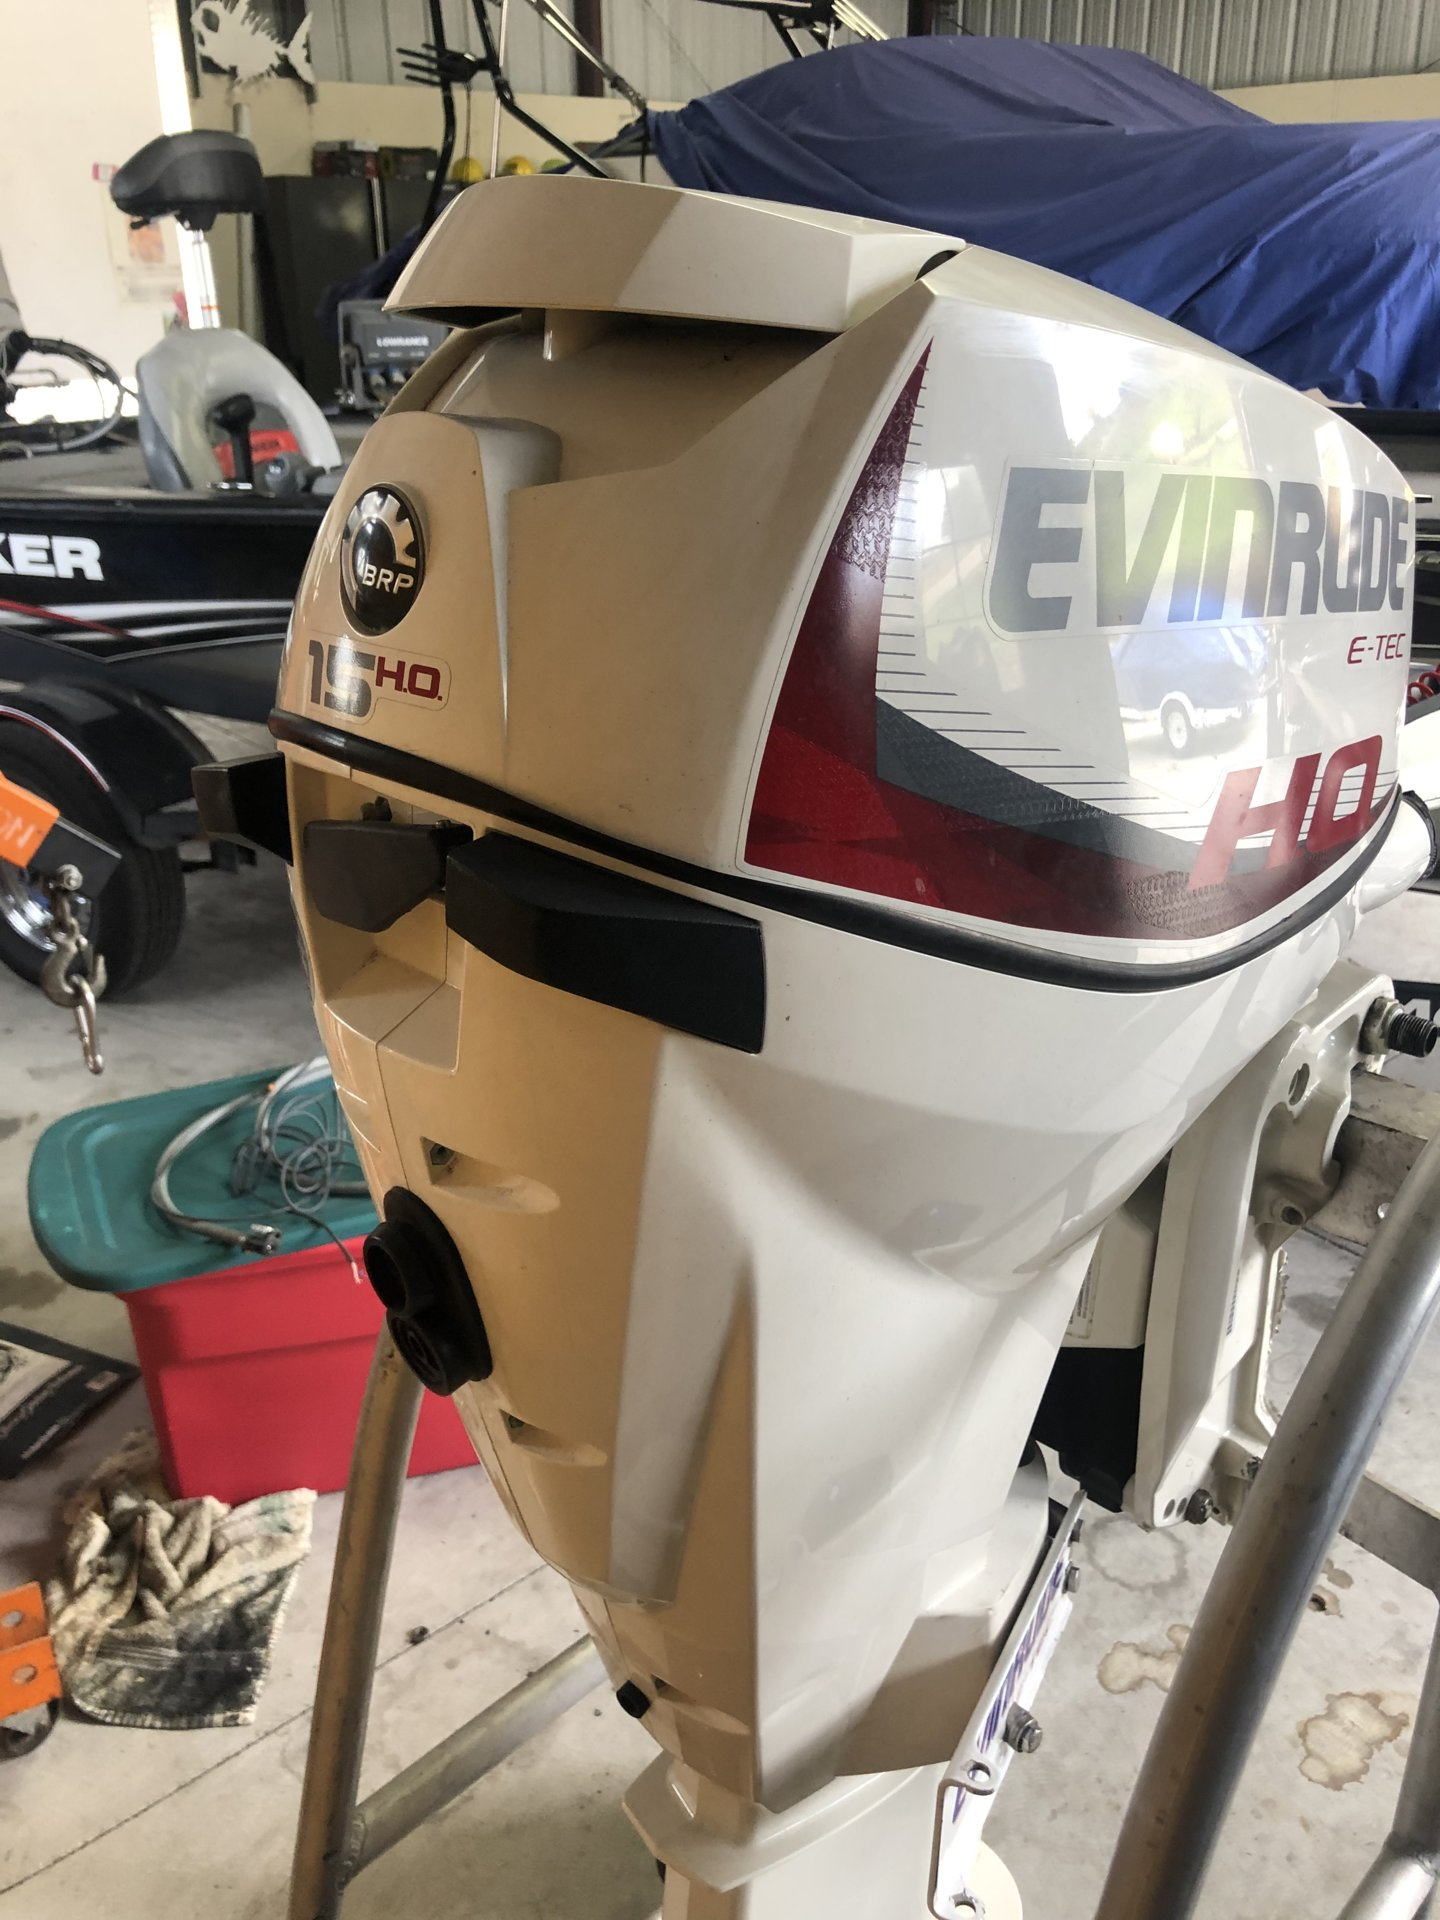 For Sale - 2013 Evinrude 15hp Etec HO Kicker Outboard